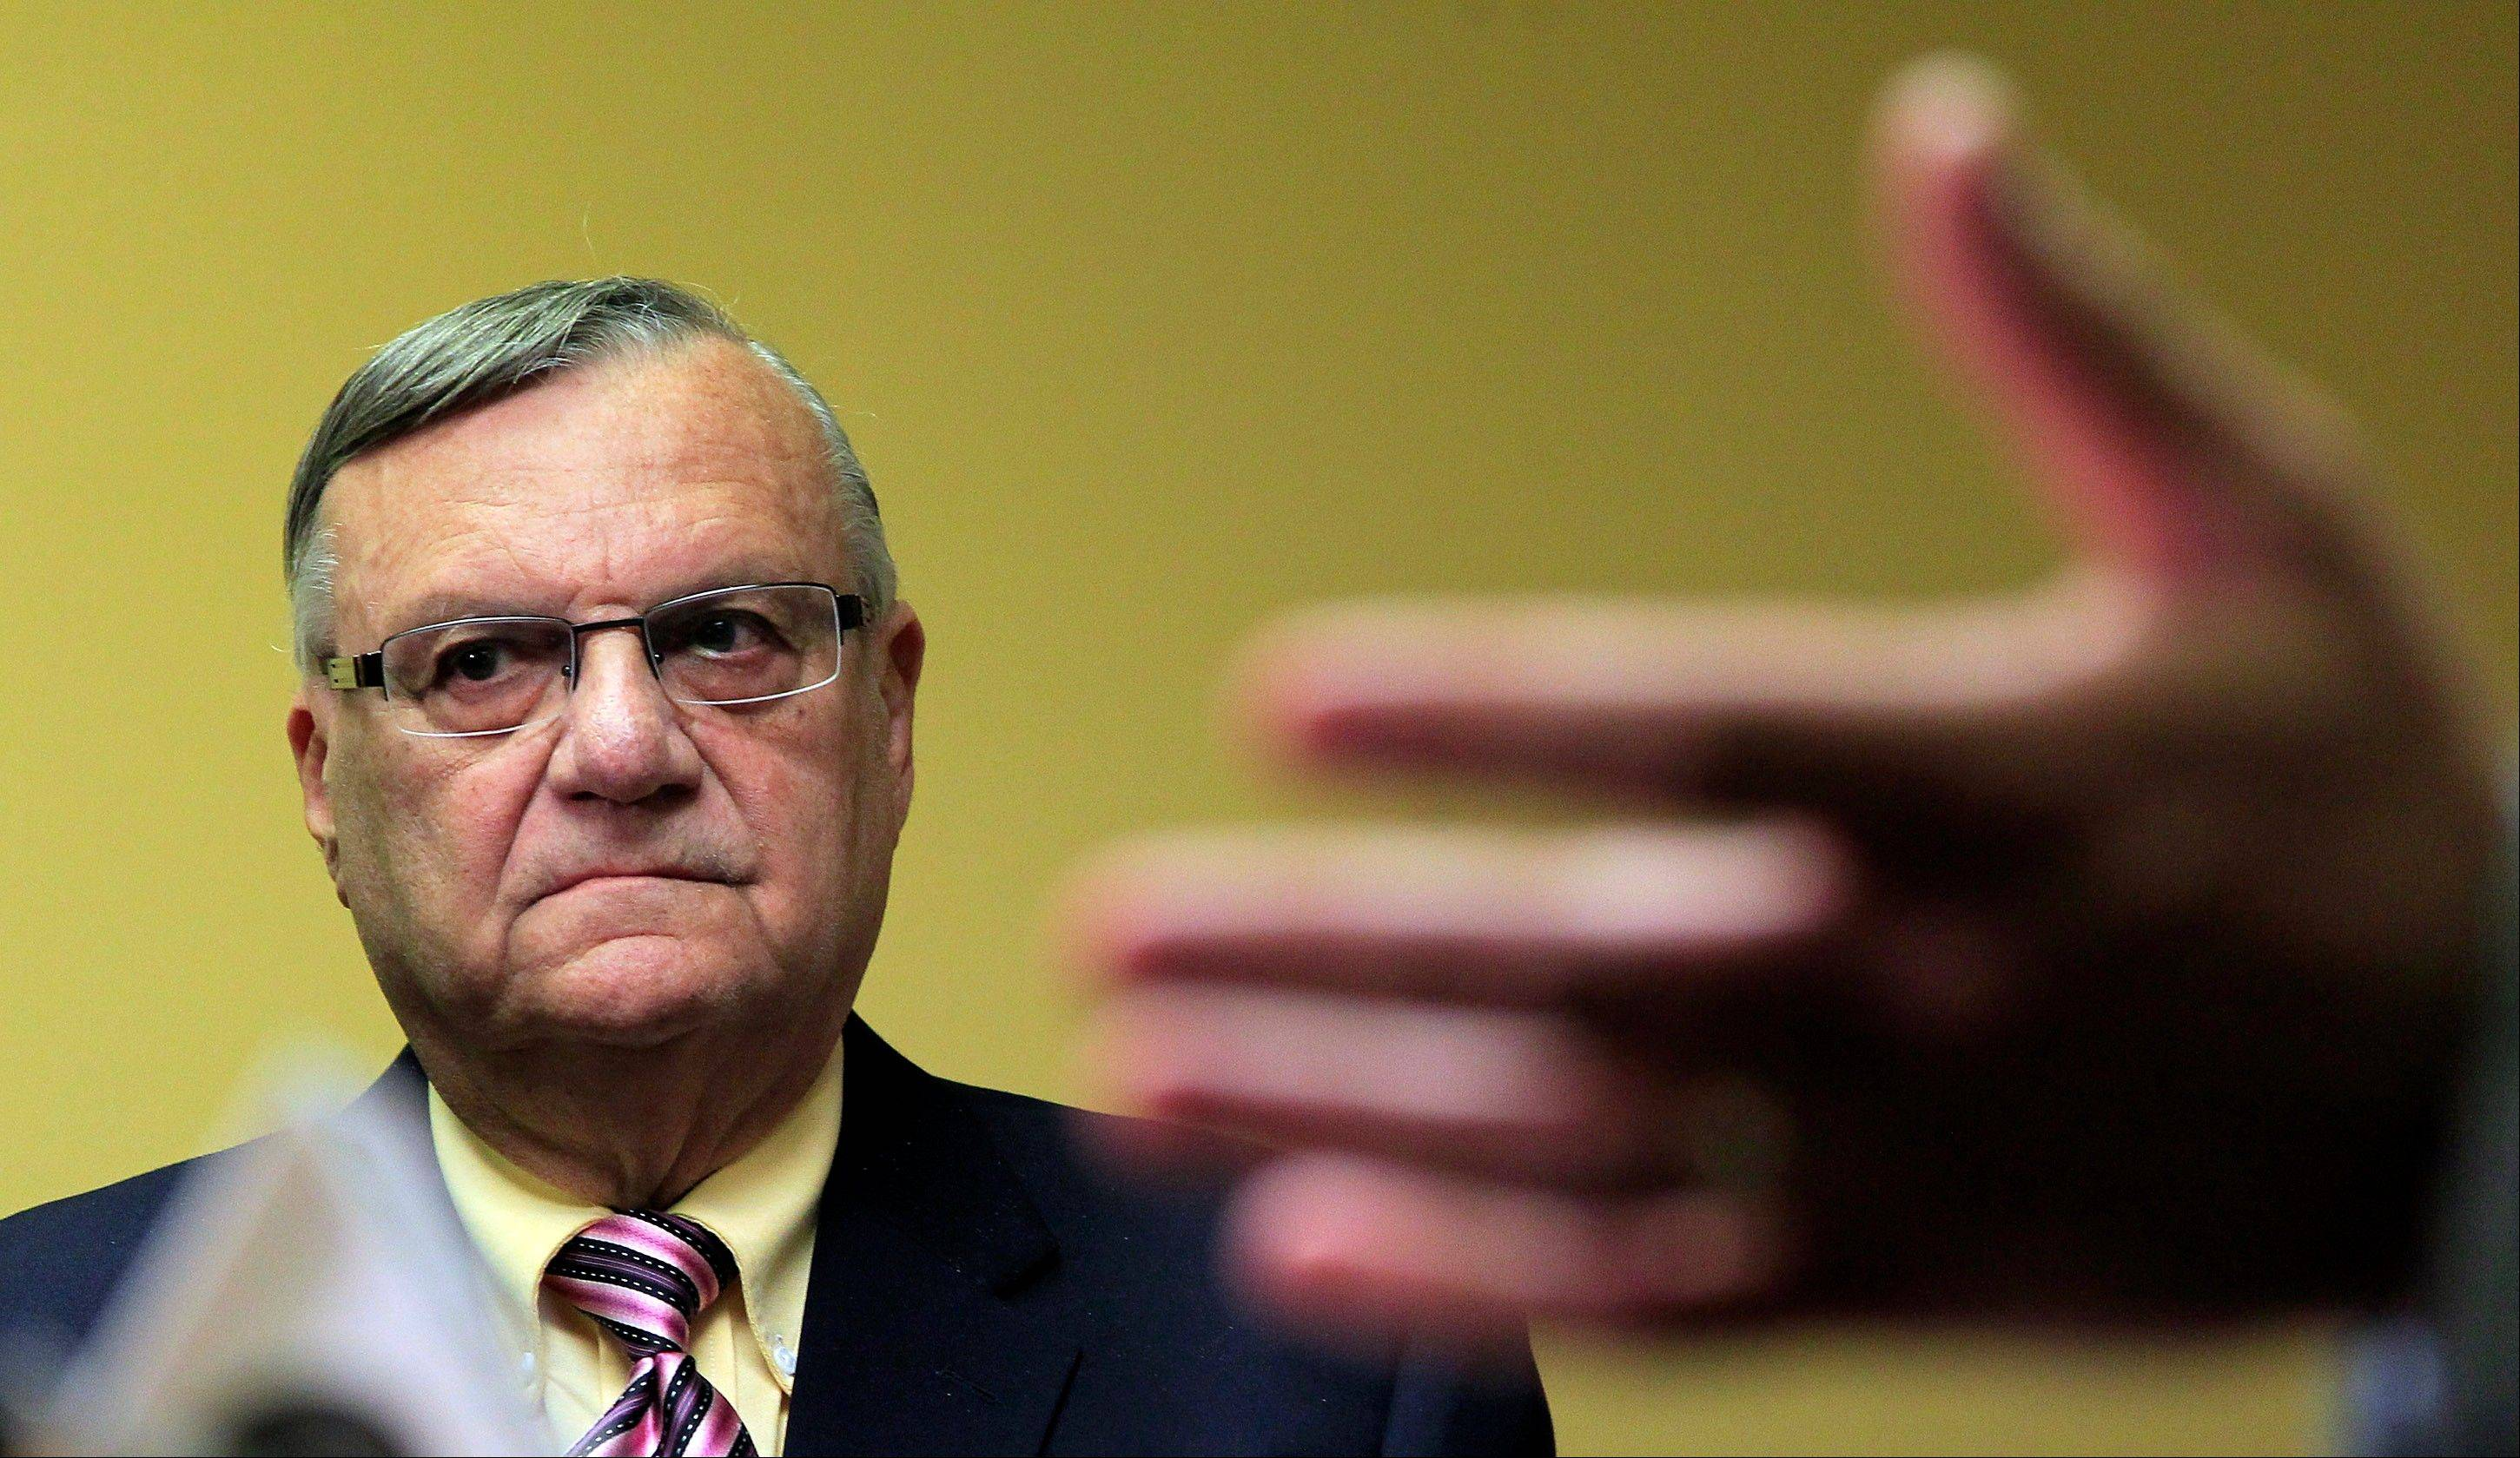 Maricopa County Sheriff Joe Arpaio, who led the way for local police across the country to take up immigration enforcement, is reconsidering his crackdowns � and other law enforcement officials who followed his lead are expected to eventually back away, too.